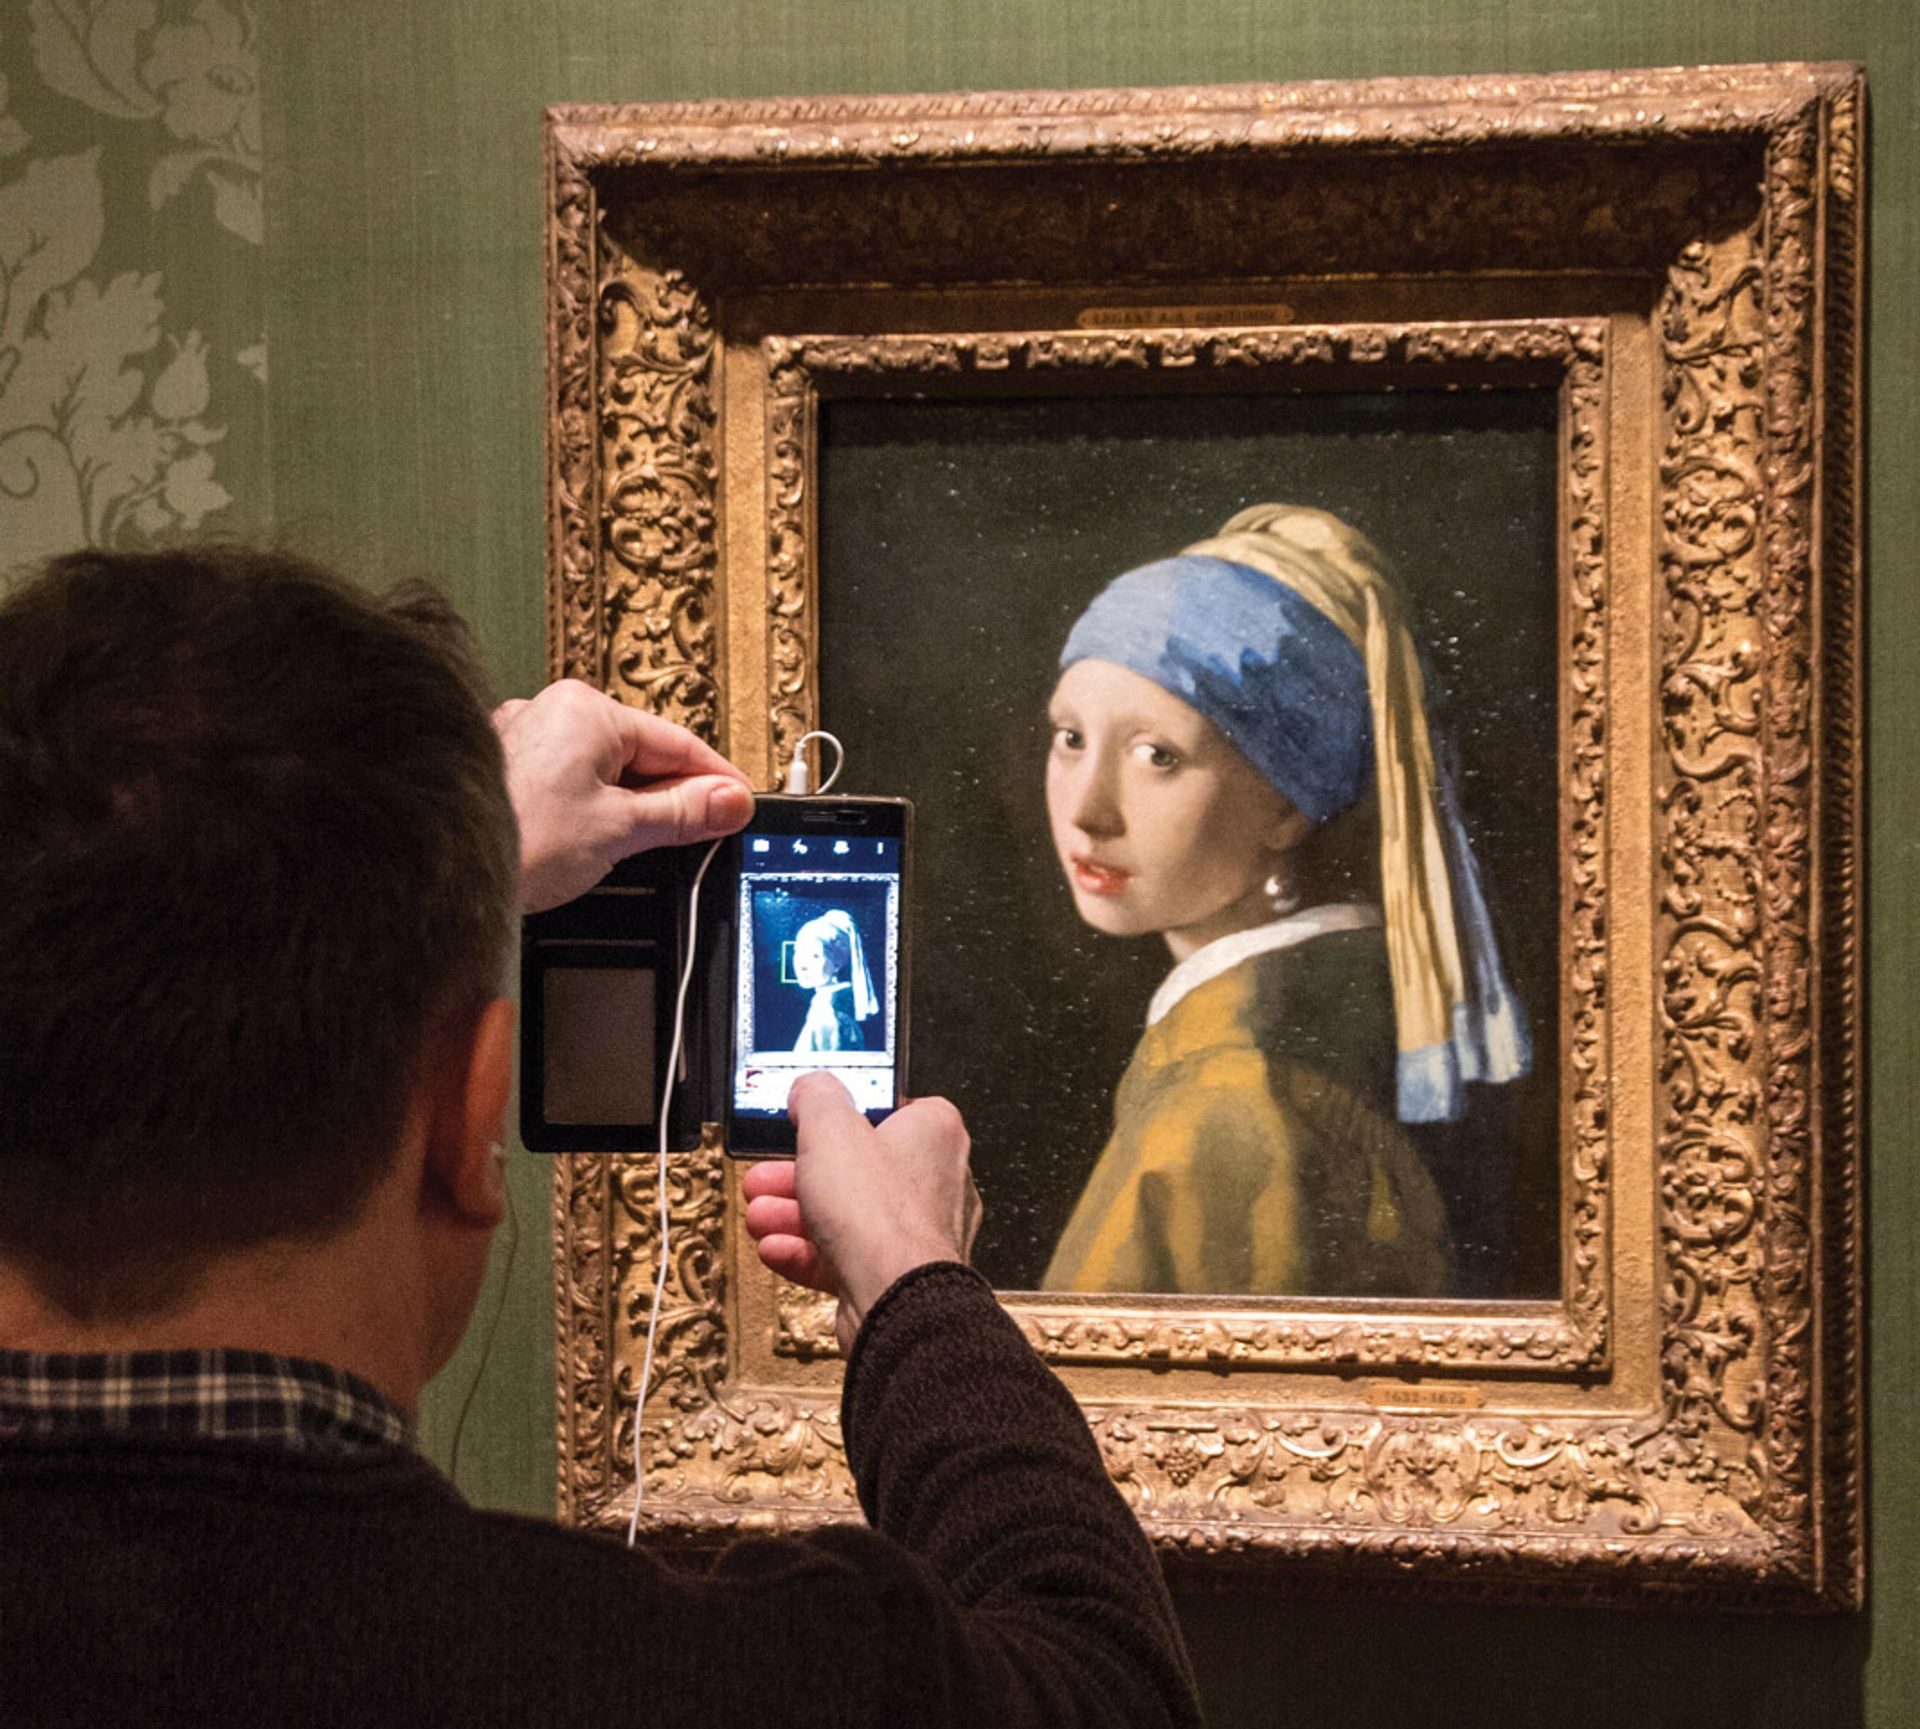 The Mauritshuis in The Hague, home to Vermeer's Girl With a Pearl Earring (1665), has released thousands of free digital images Jan Fritz / Alamy